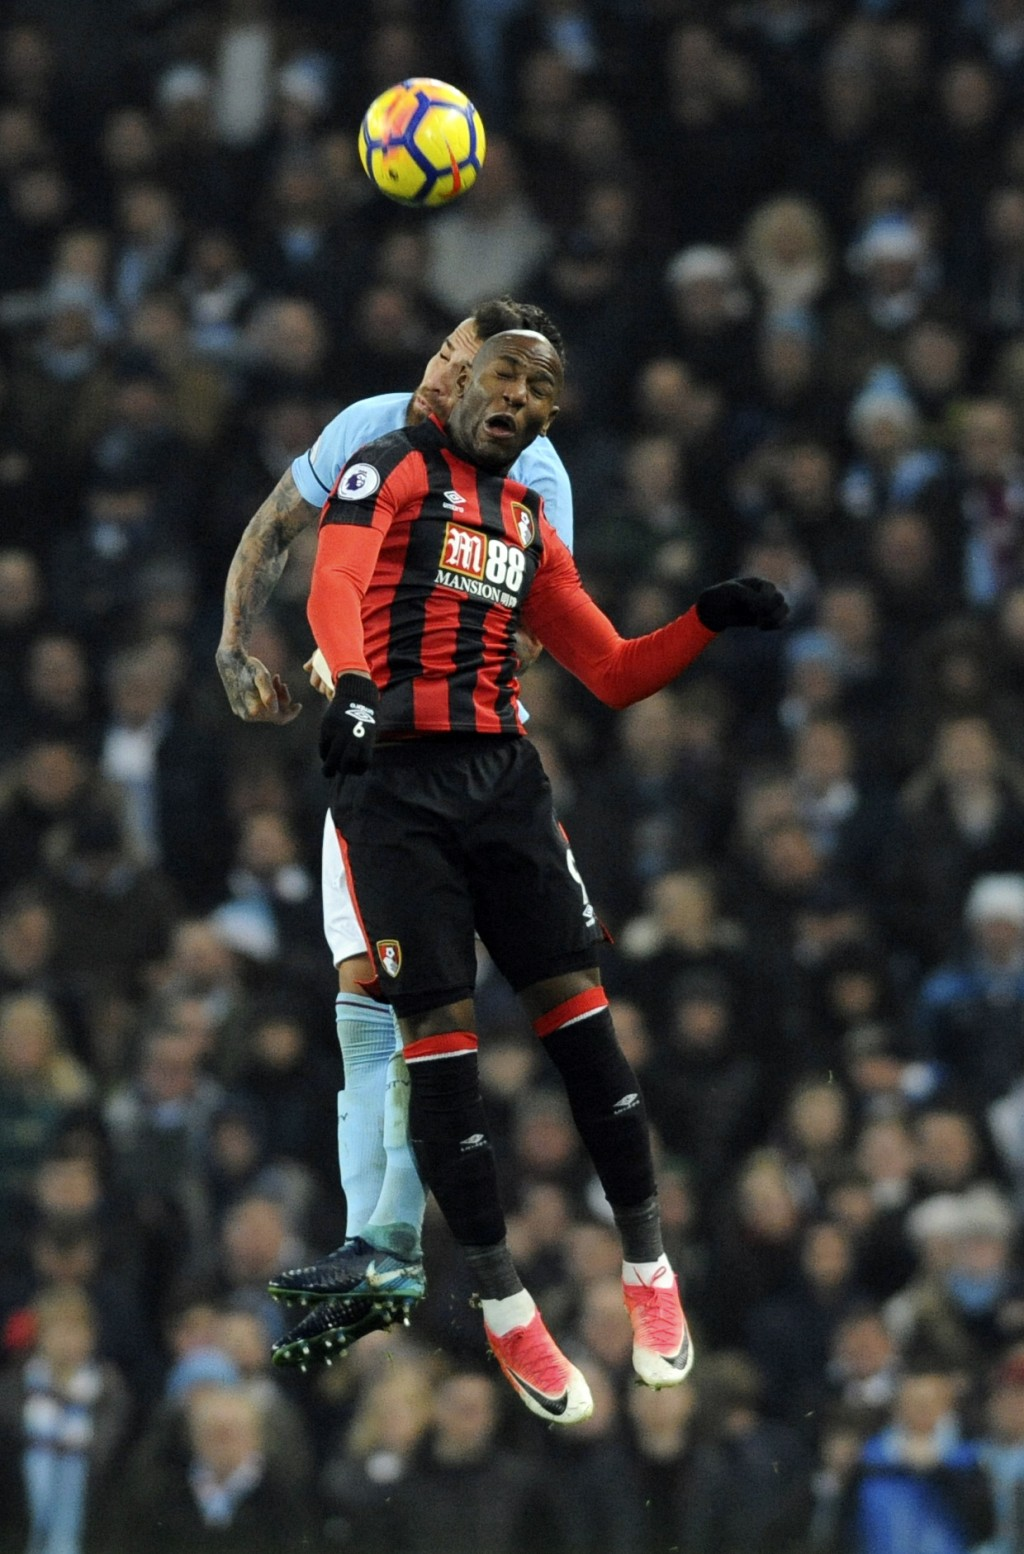 Manchester City's Nicolas Otamendi, behind, and Bournemouth's Benik Afobe battle for the ball during the English Premier League soccer match between M...